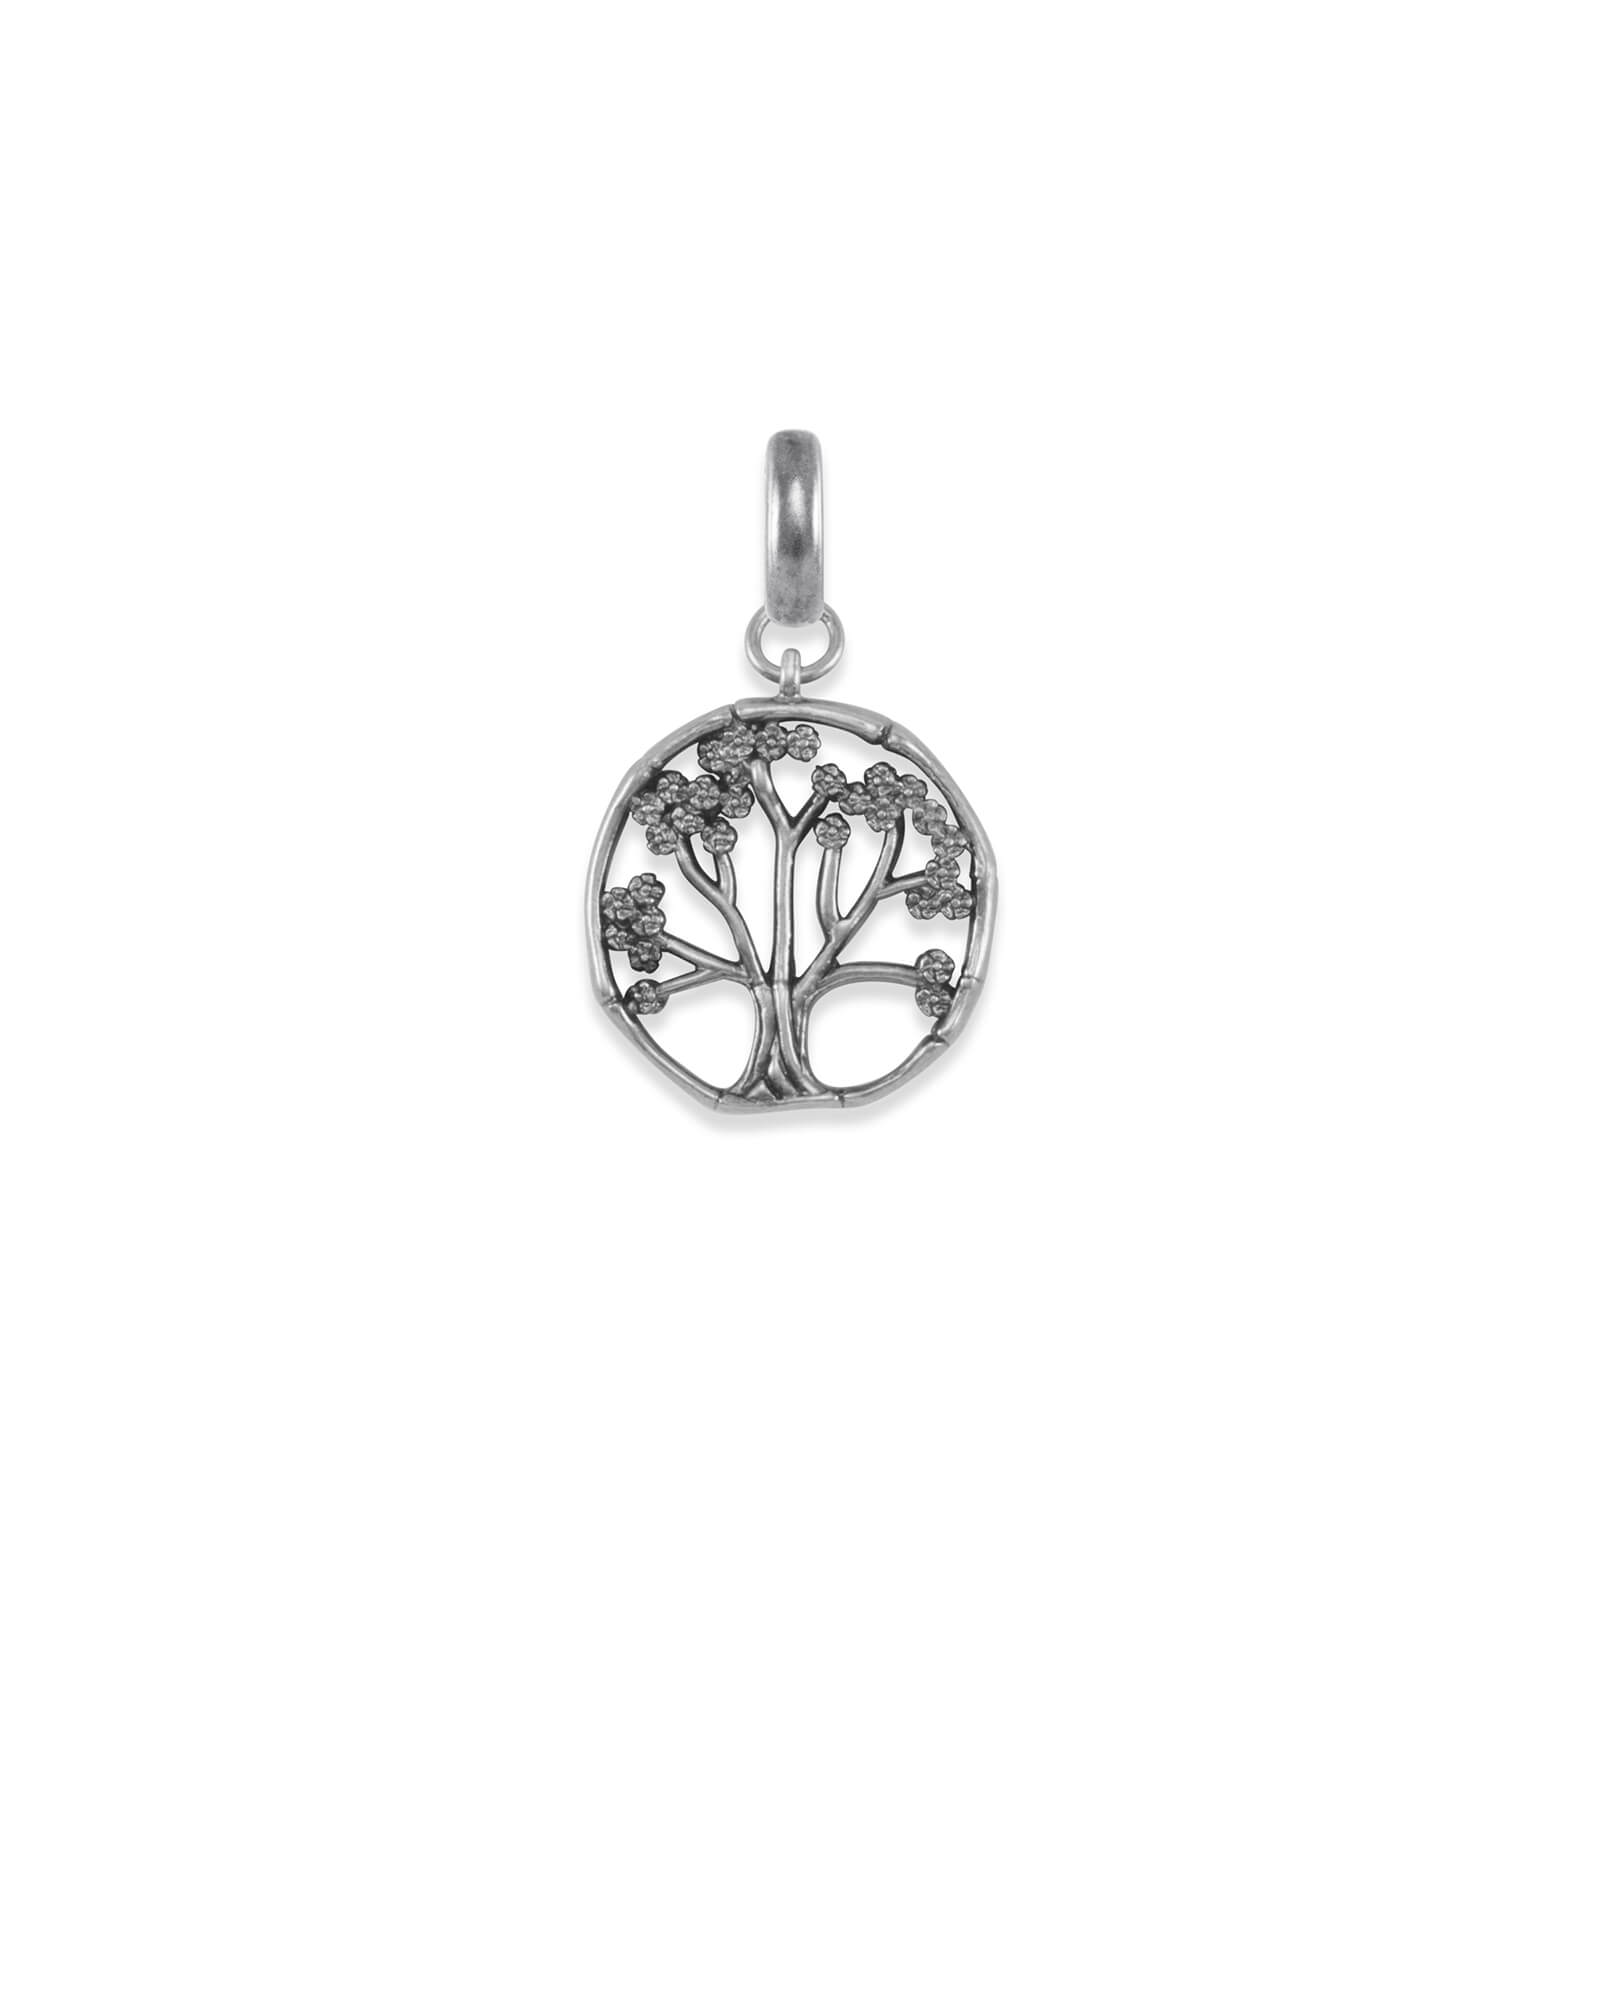 Cherry Blossom Tree Charm in Vintage Silver